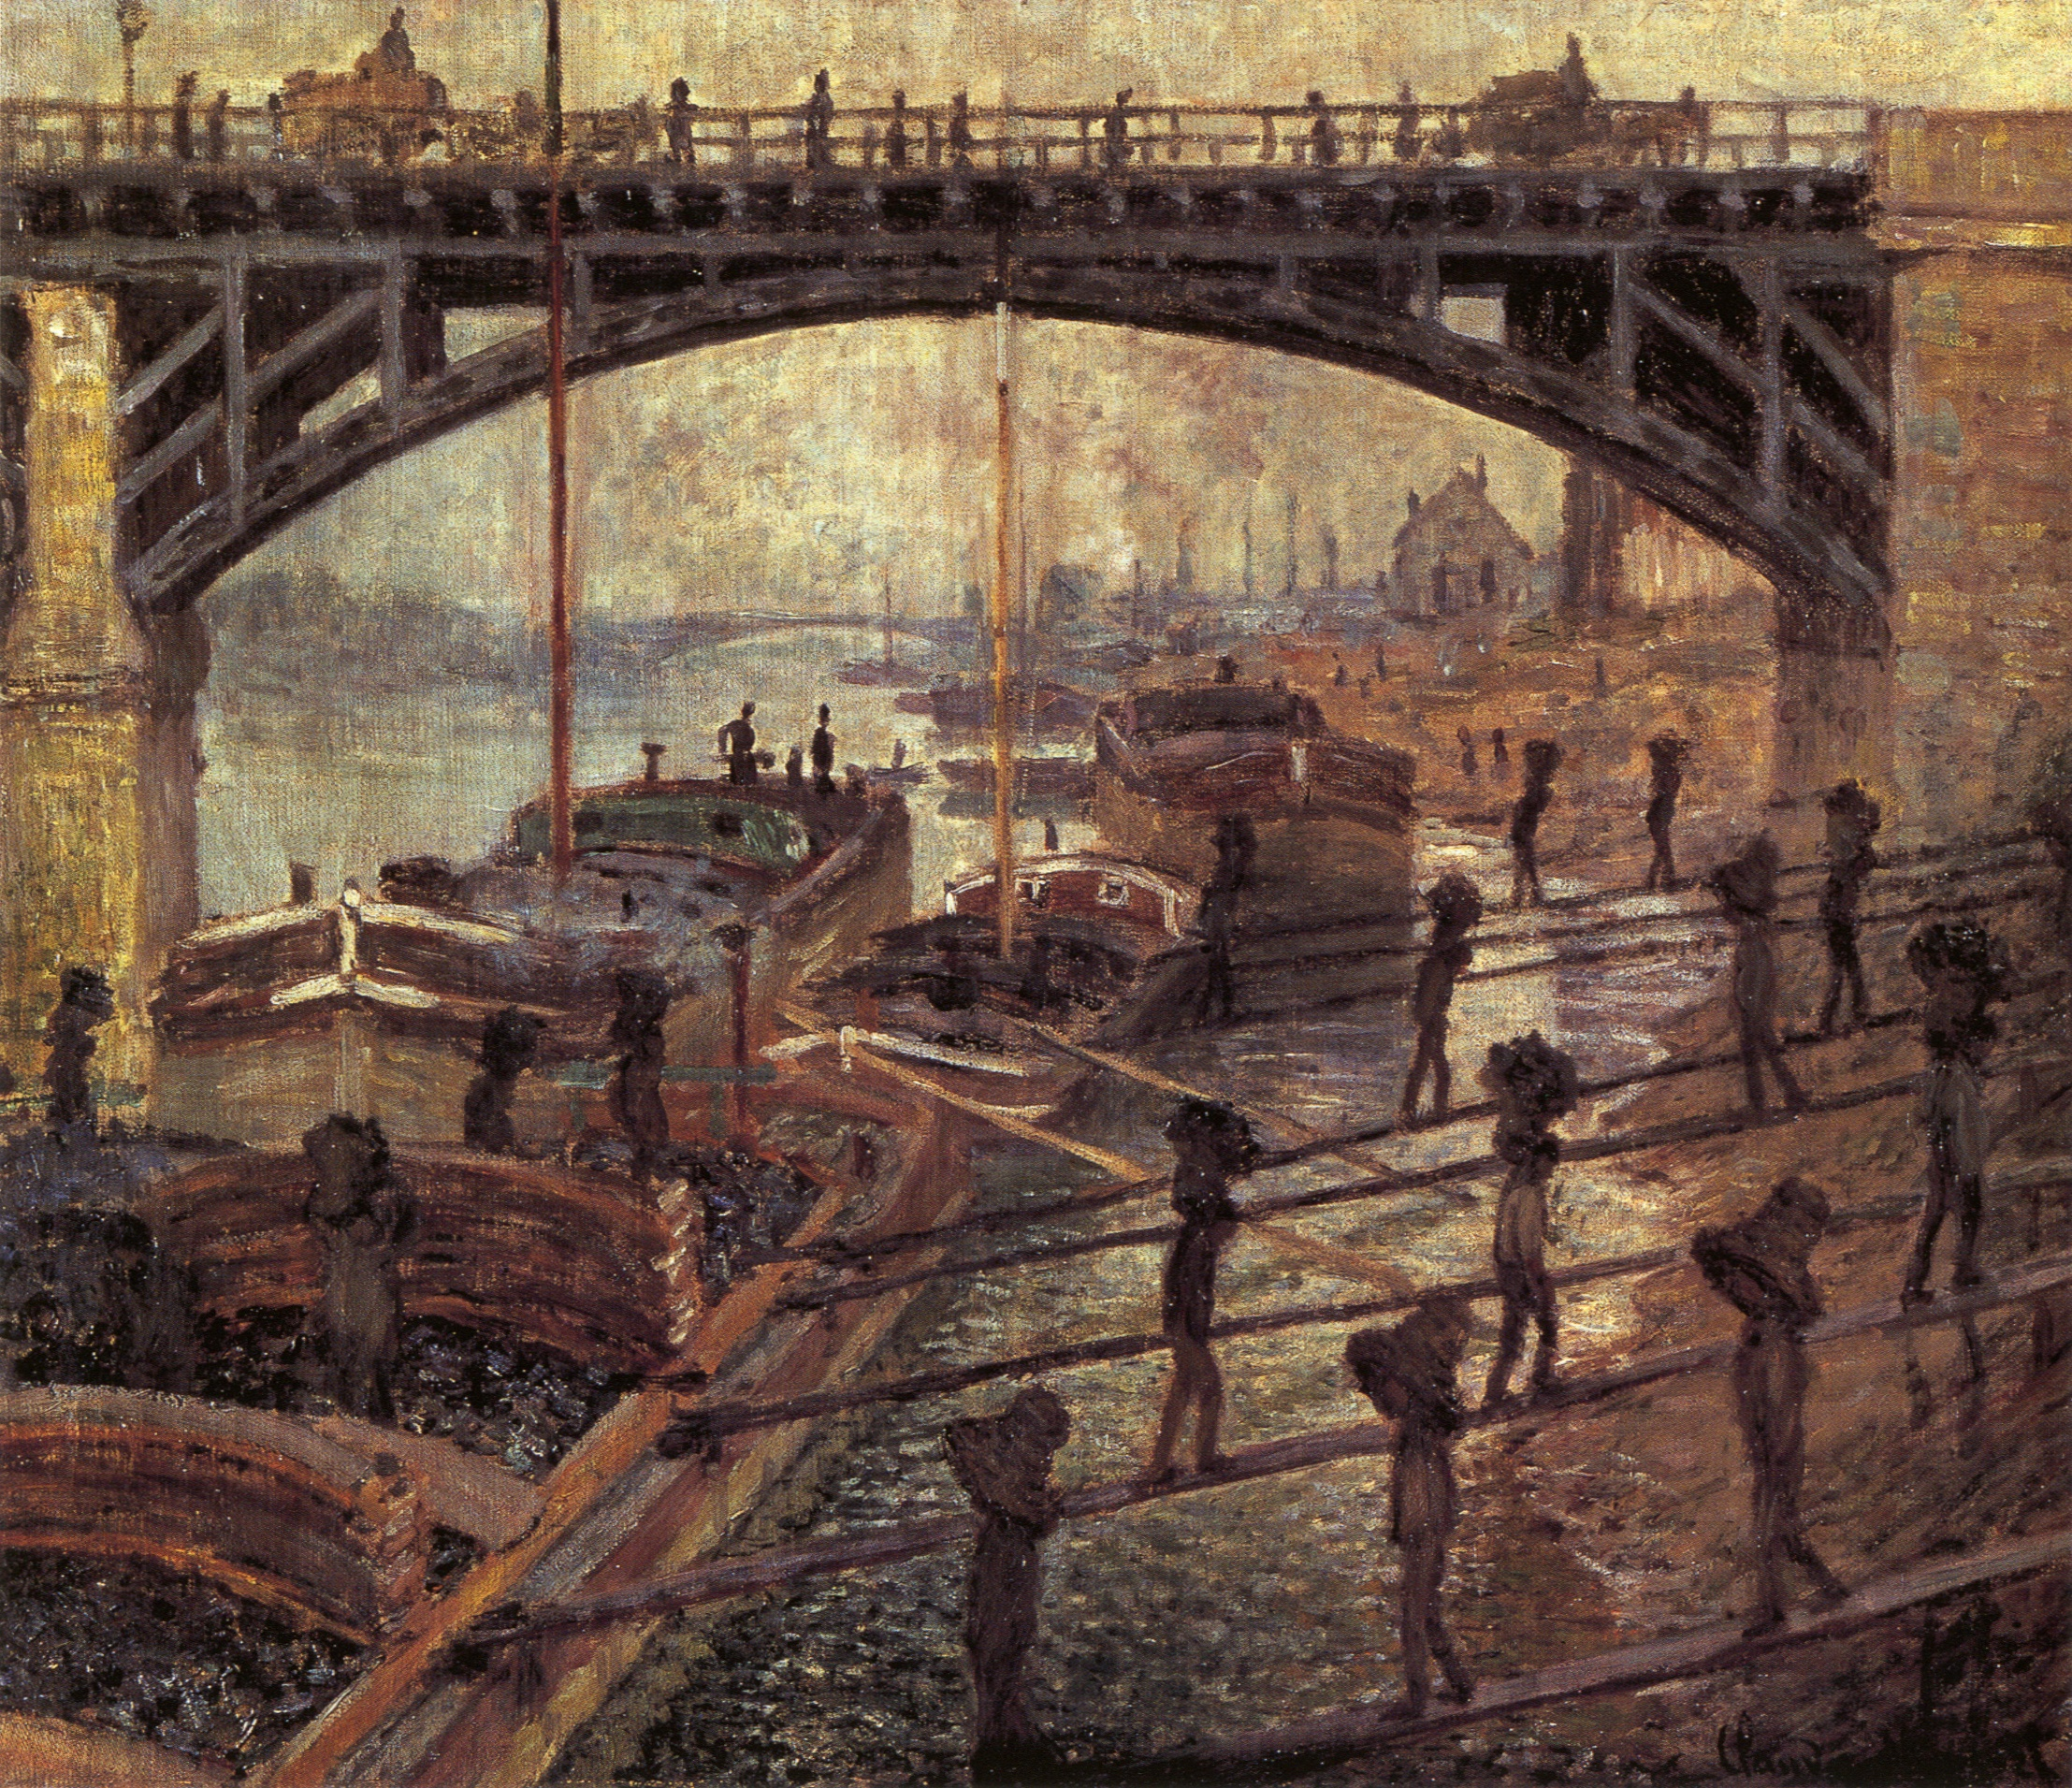 The Coal Carriers, oil on canvas. Claude Monet, c. 1875 (Image courtesy of the Musee d'Orsay, Paris)